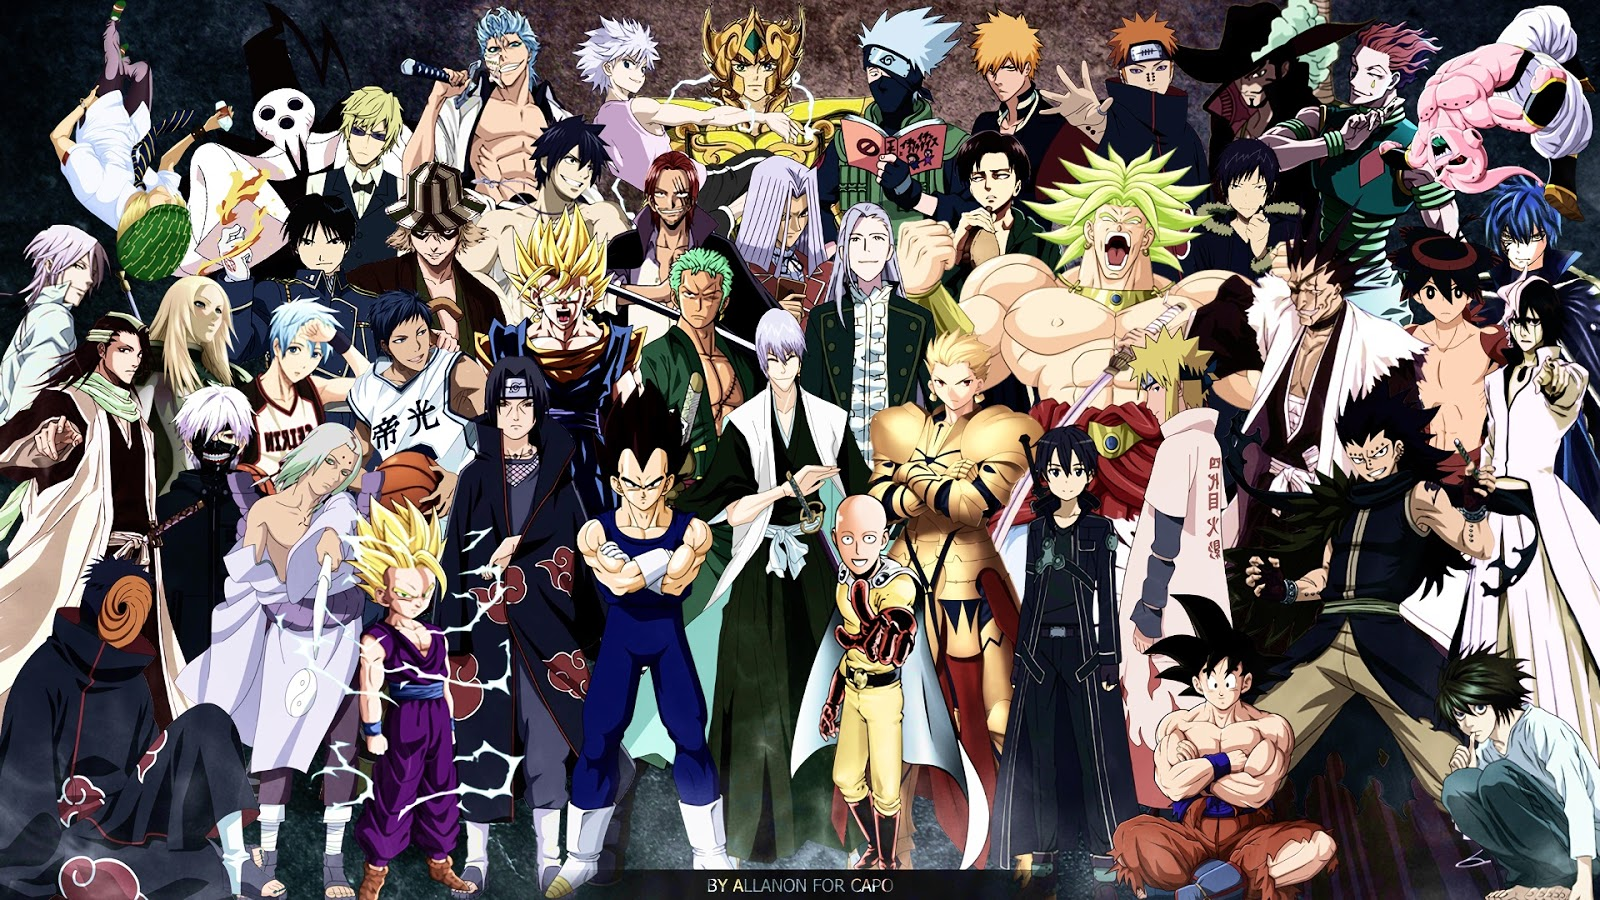 Unduh 660+ Wallpaper Anime Crossover Hd HD Gratid